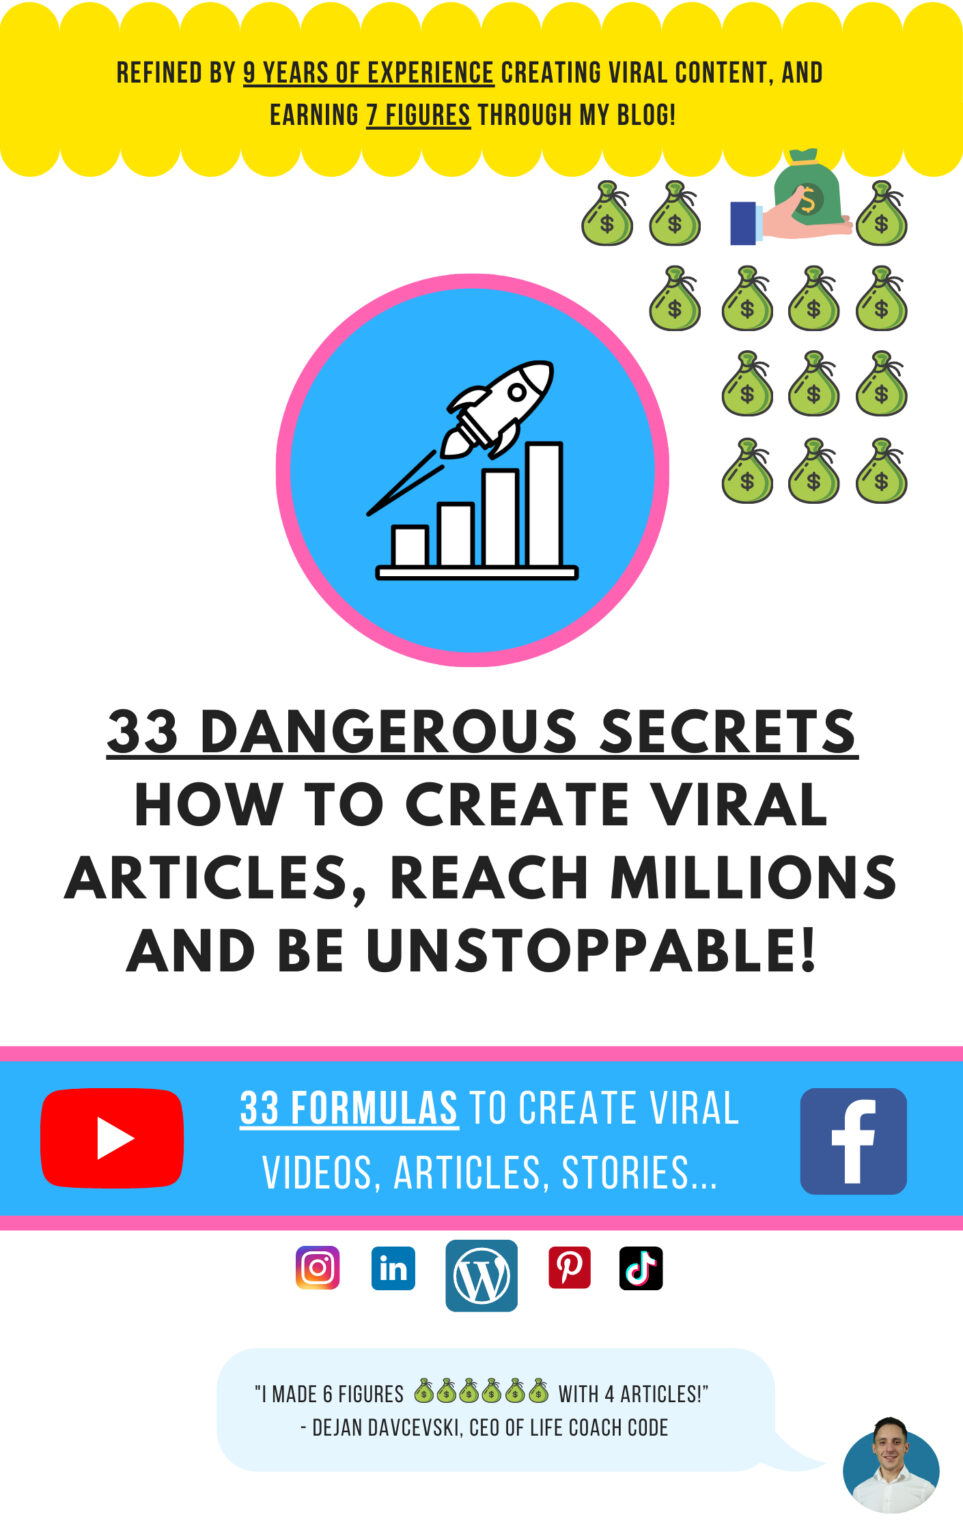 33 Dangerous Secrets How to Create Viral Articles, Reach Millions and Be Unstoppable!